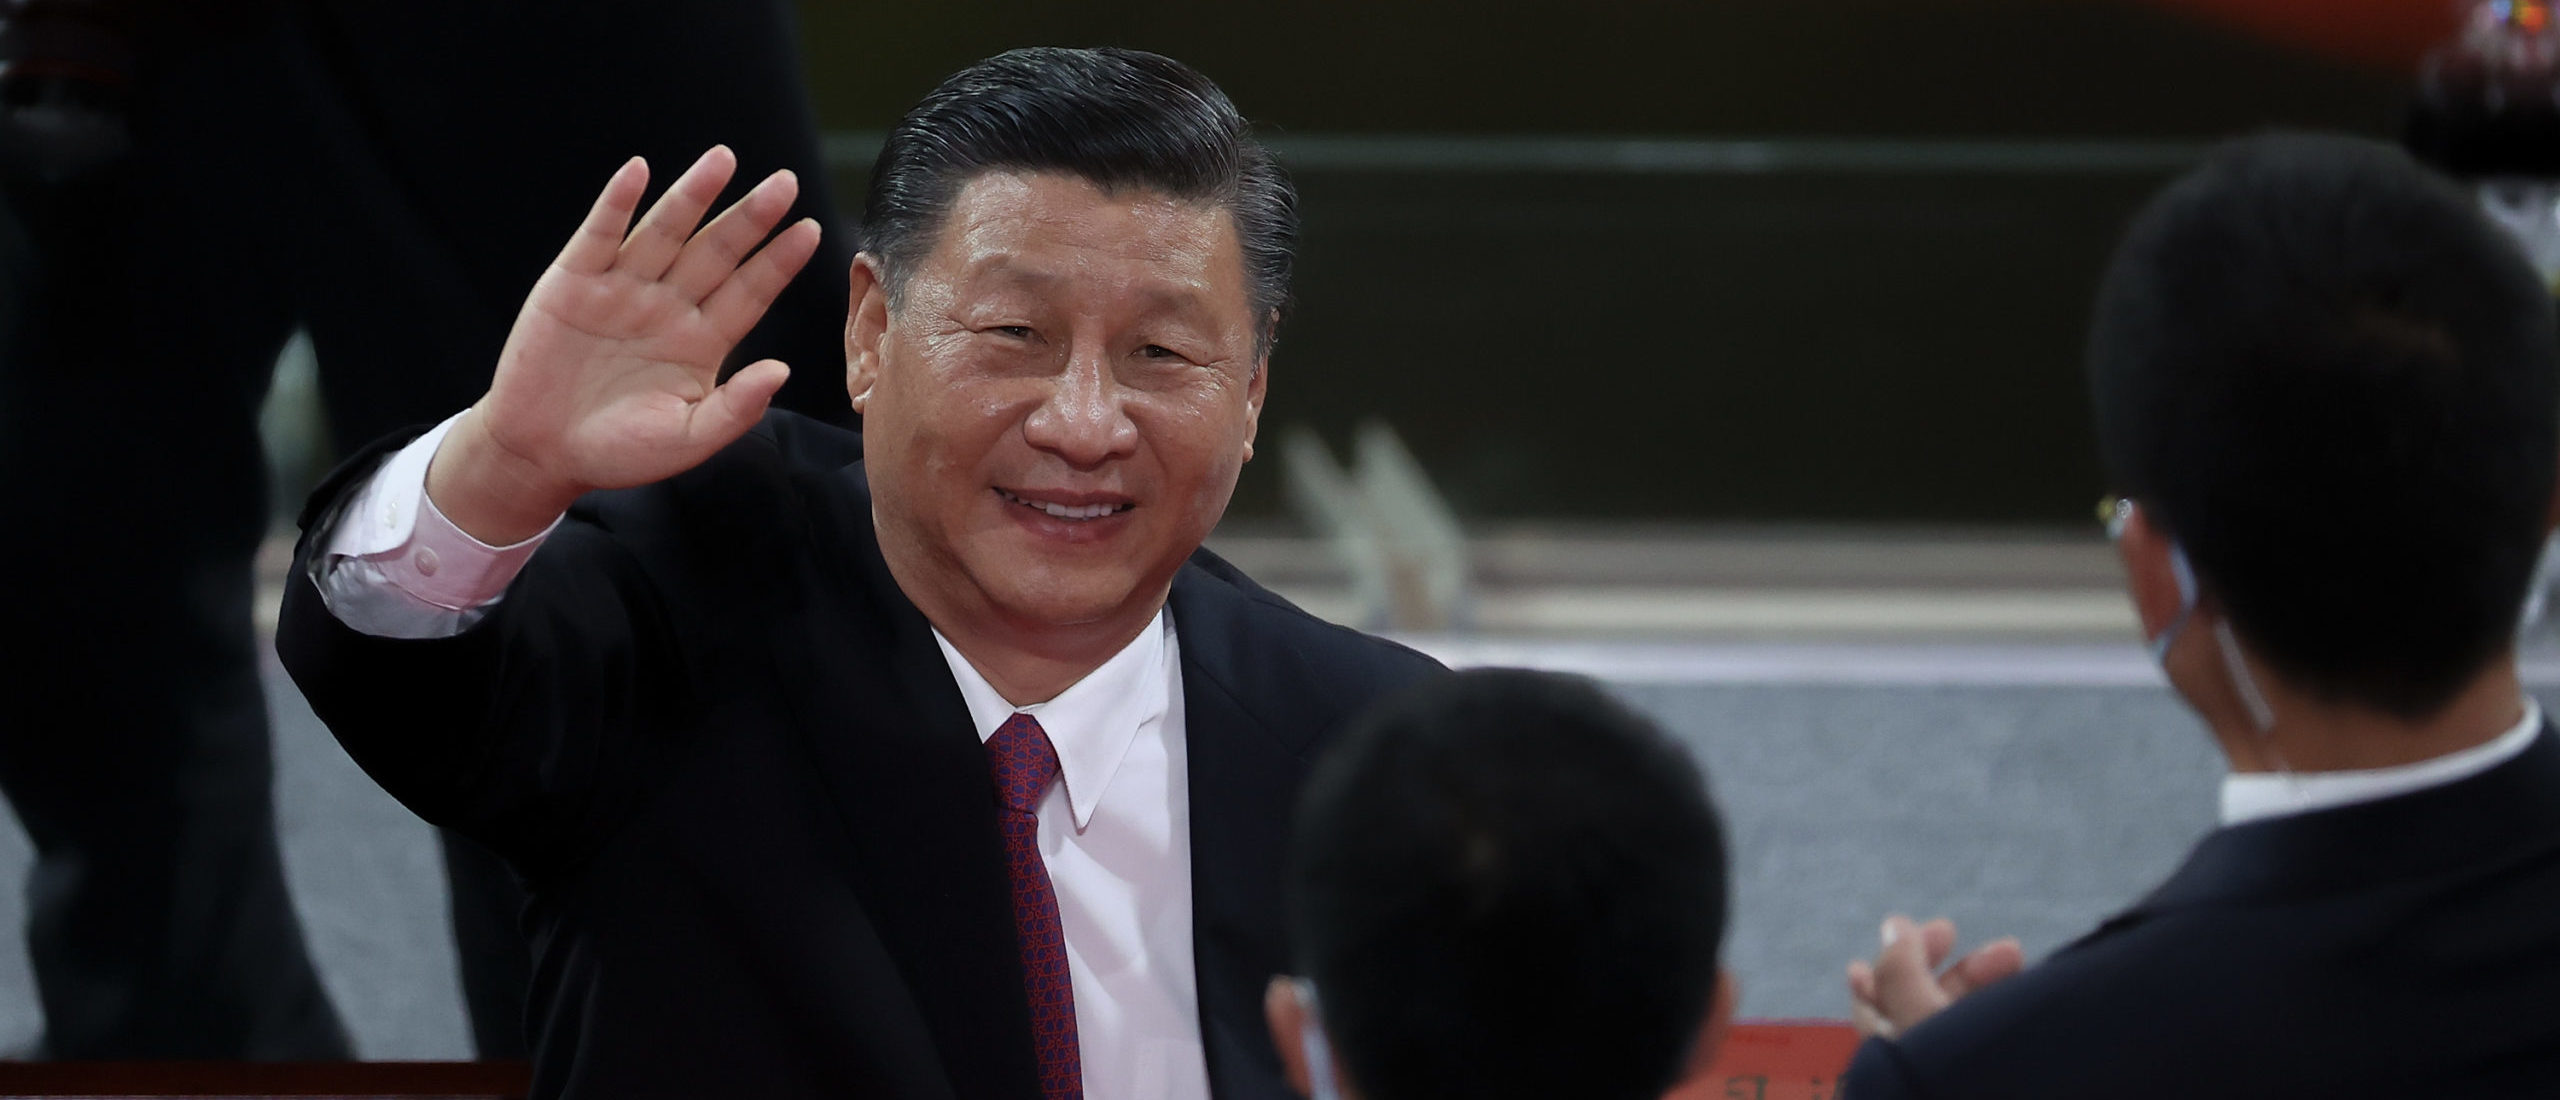 Chinese President Xi Jinping waves as he attends the art performance celebrating the 100th anniversary of the Founding of the Communist Party of China on June 28, 2021 in Beijing, China. (Photo by Lintao Zhang/Getty Images)